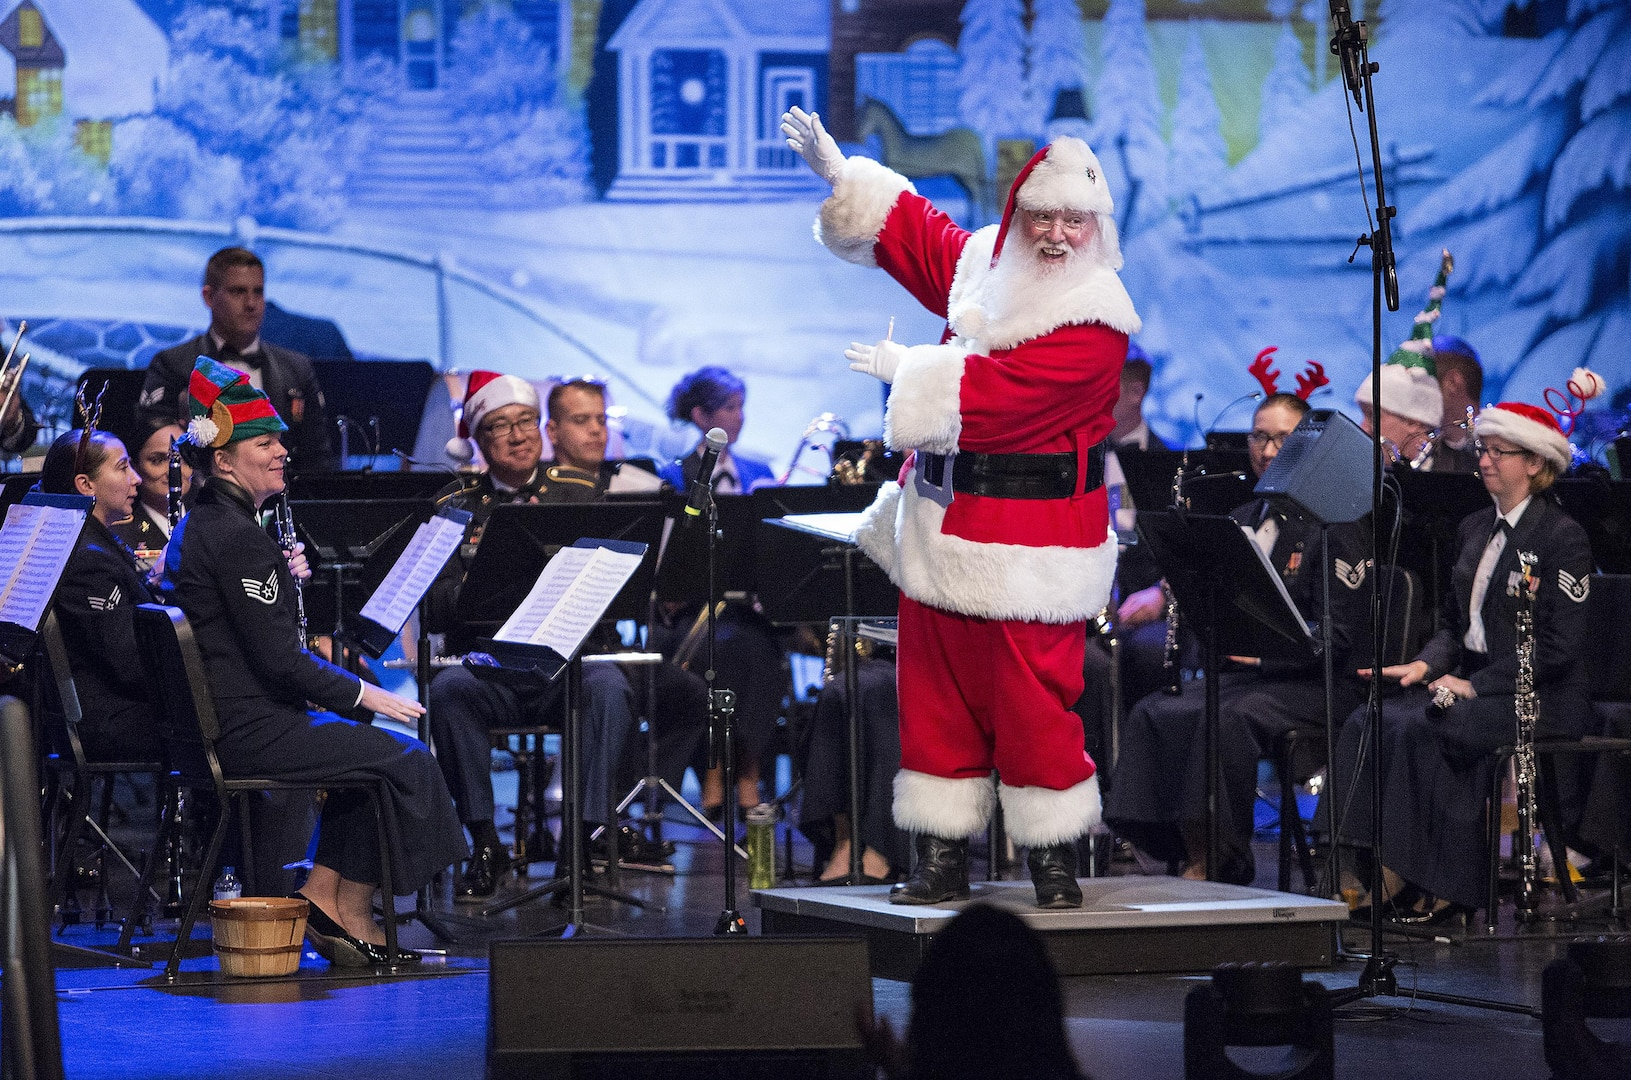 Santa Clause presents members of the USAF Band of the West during the Holiday in Blue concert Dec. 7, 2015 at the Edgewood Independent School District Theatre for the Performing Arts in San Antonio, Texas. The concert included a variety of holiday songs from around the world, a children's story and a sing-a-long. Attendees included members of JBSA, community members and retirees. The Airmen assigned to the band are highly-trained professional musicians who have dedicated themselves to serving their country through music. (U.S. Air Force photo by Johnny Saldivar)